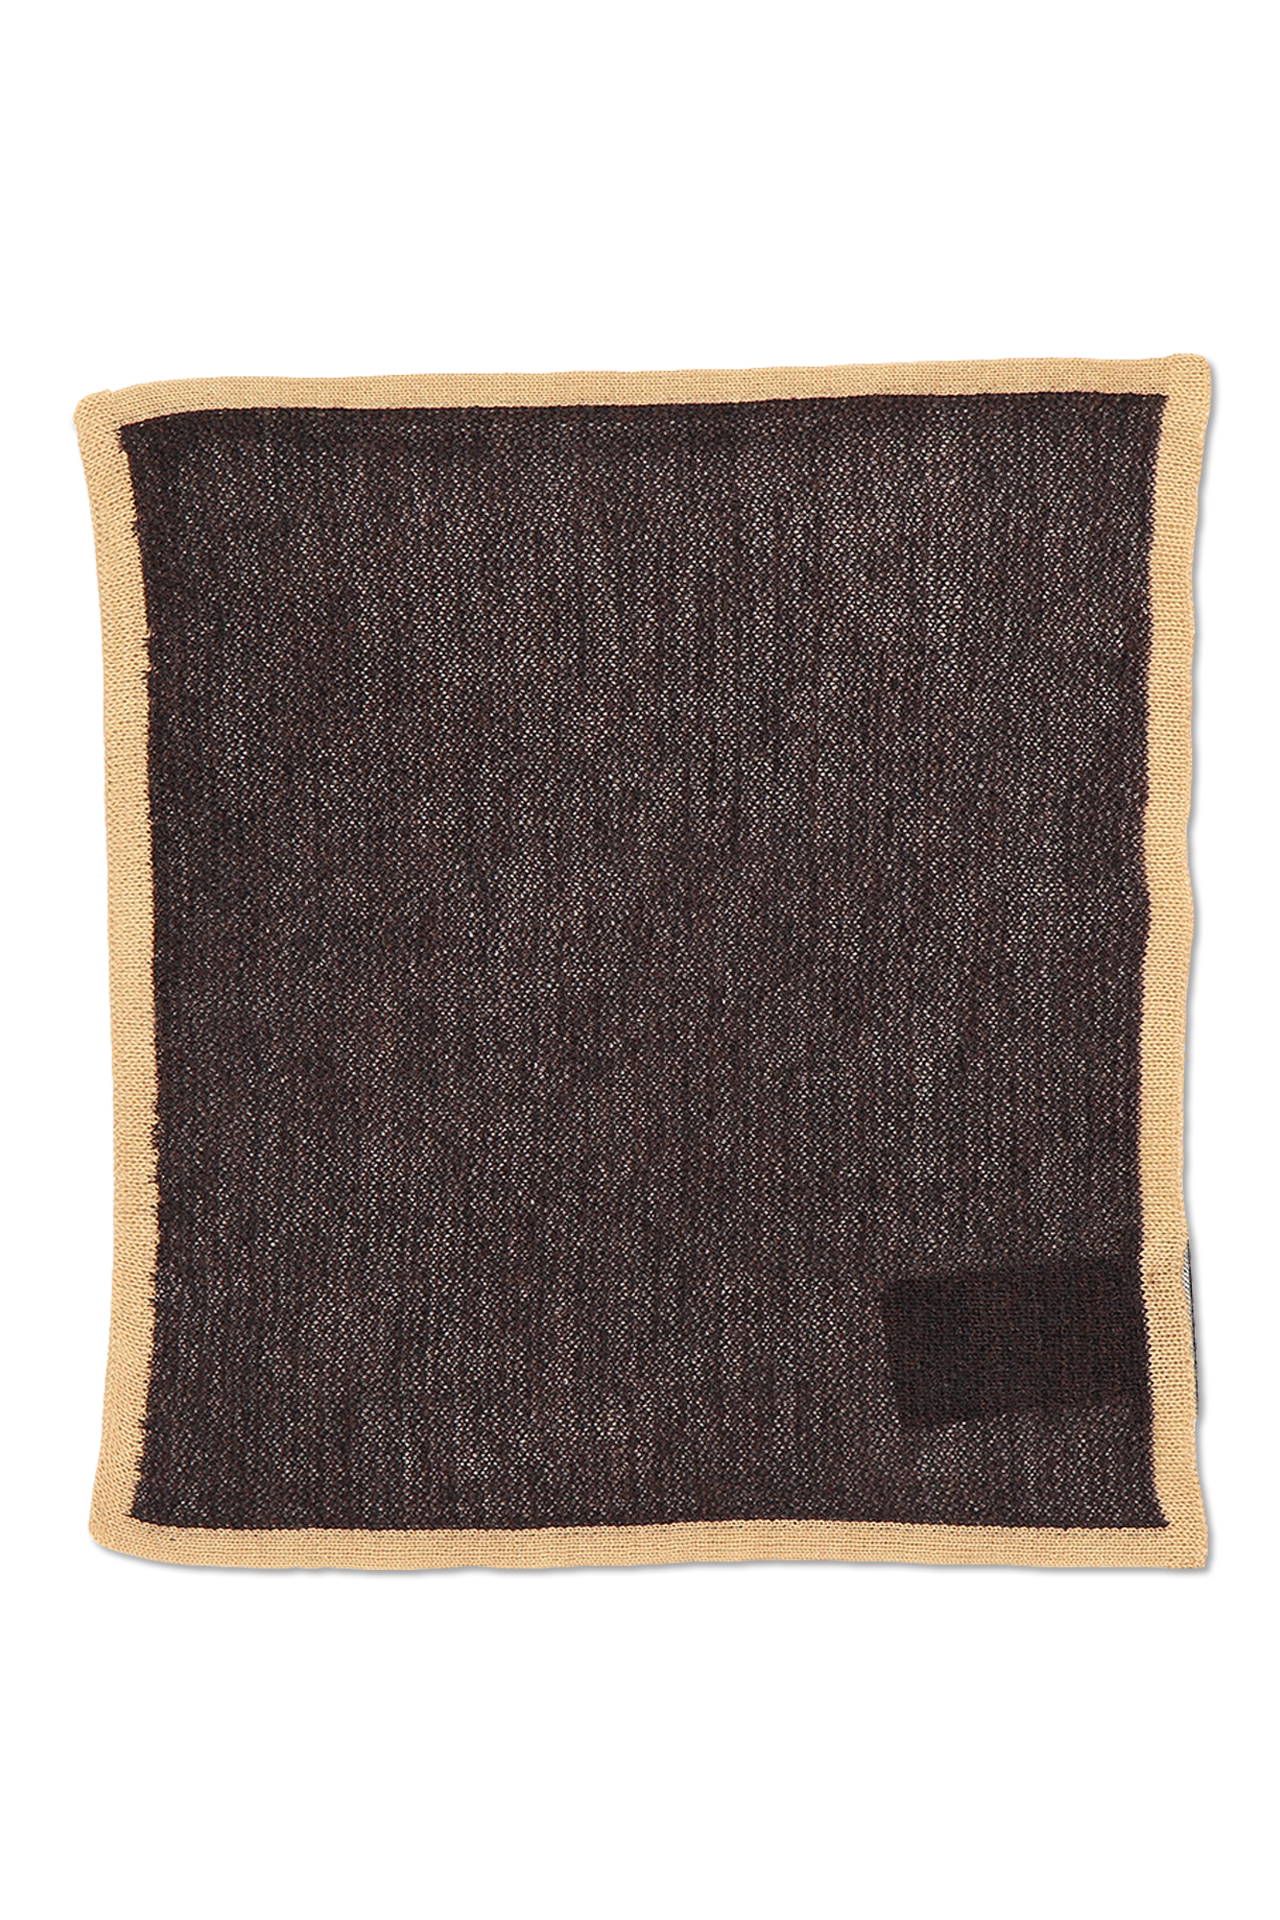 Ermenegildo Zegna Flat Lay Pocket Square Chocolate Brown